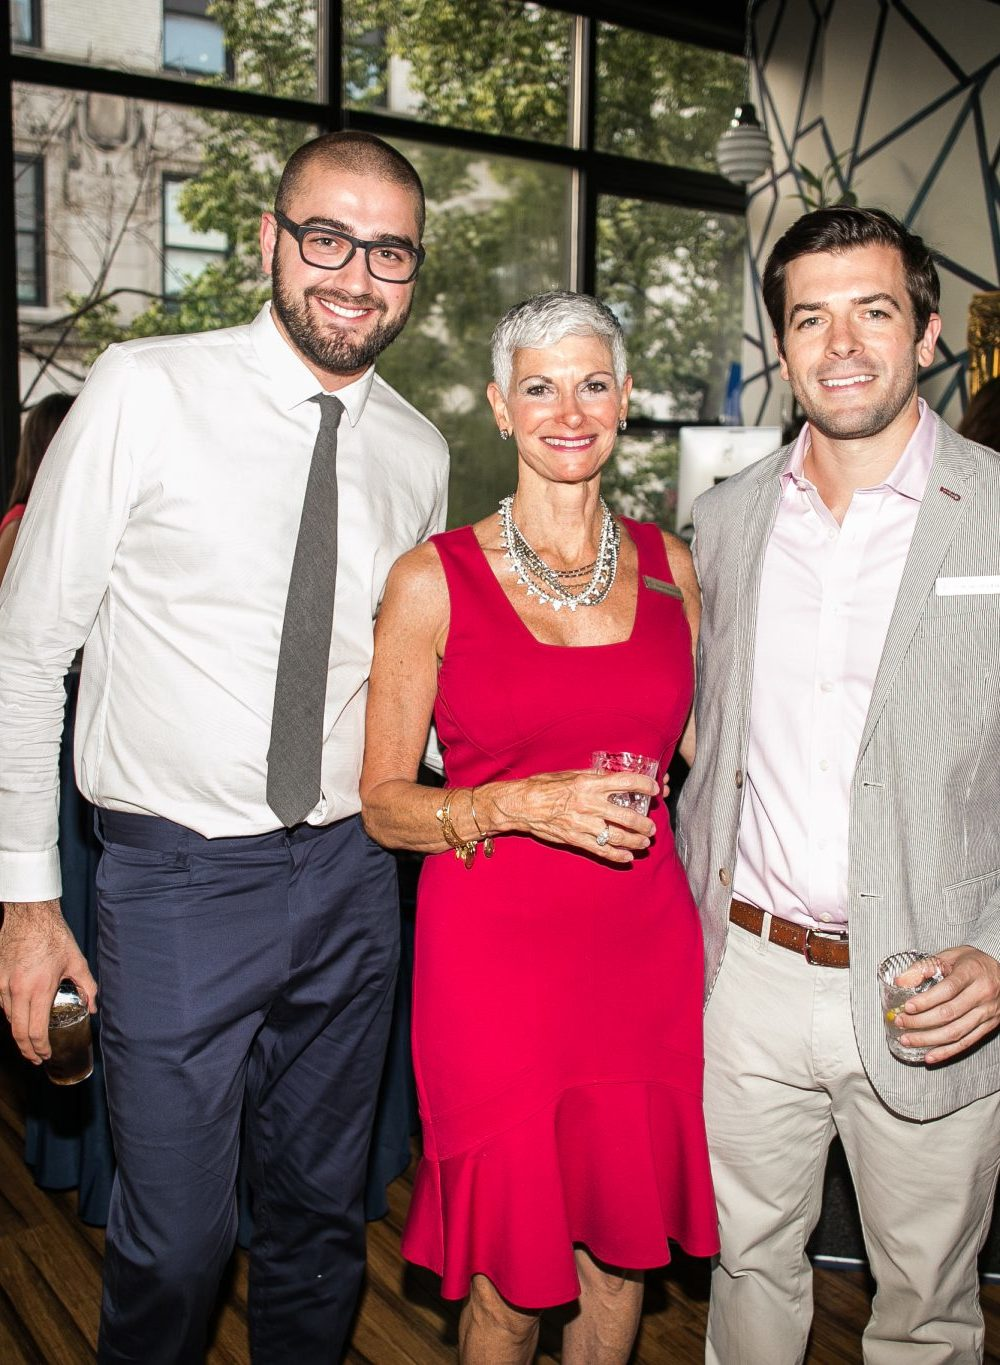 Dr. Klaus Dobra, Dr. Mike Distler, and Jeanine Robotti, PT at Physio Logic's Summer Social Fundraiser